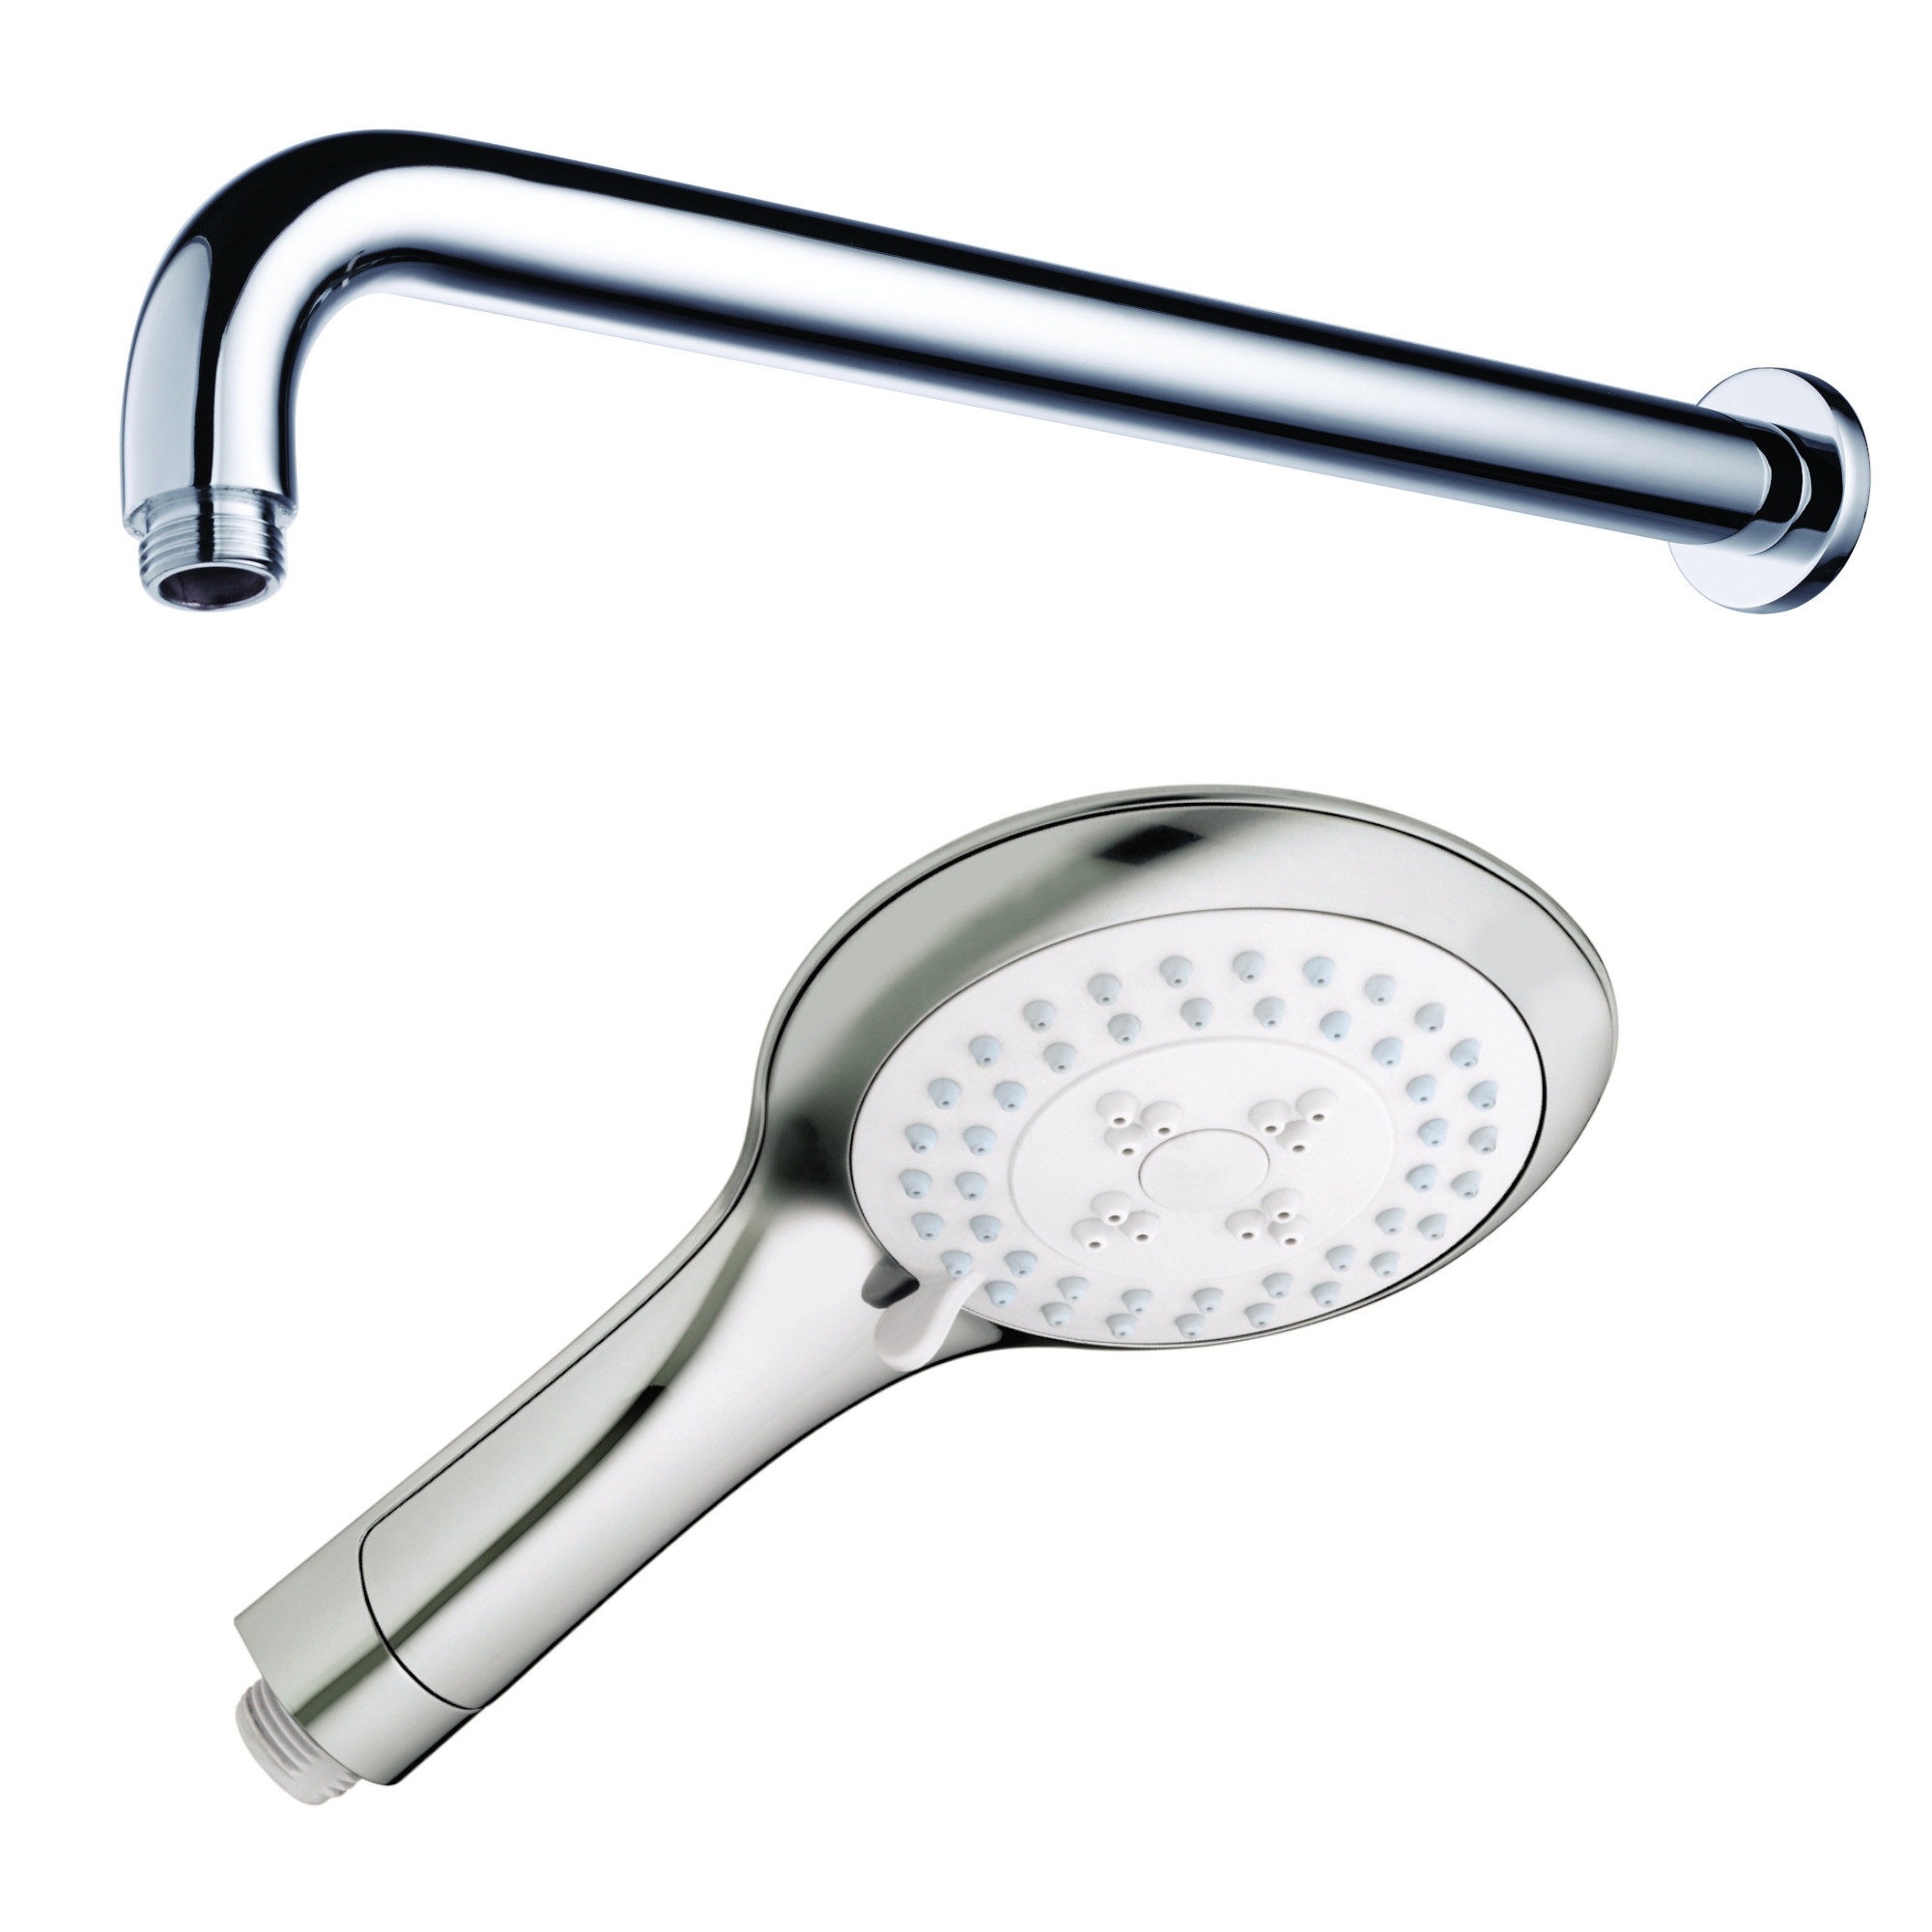 Shower Heads & Arms